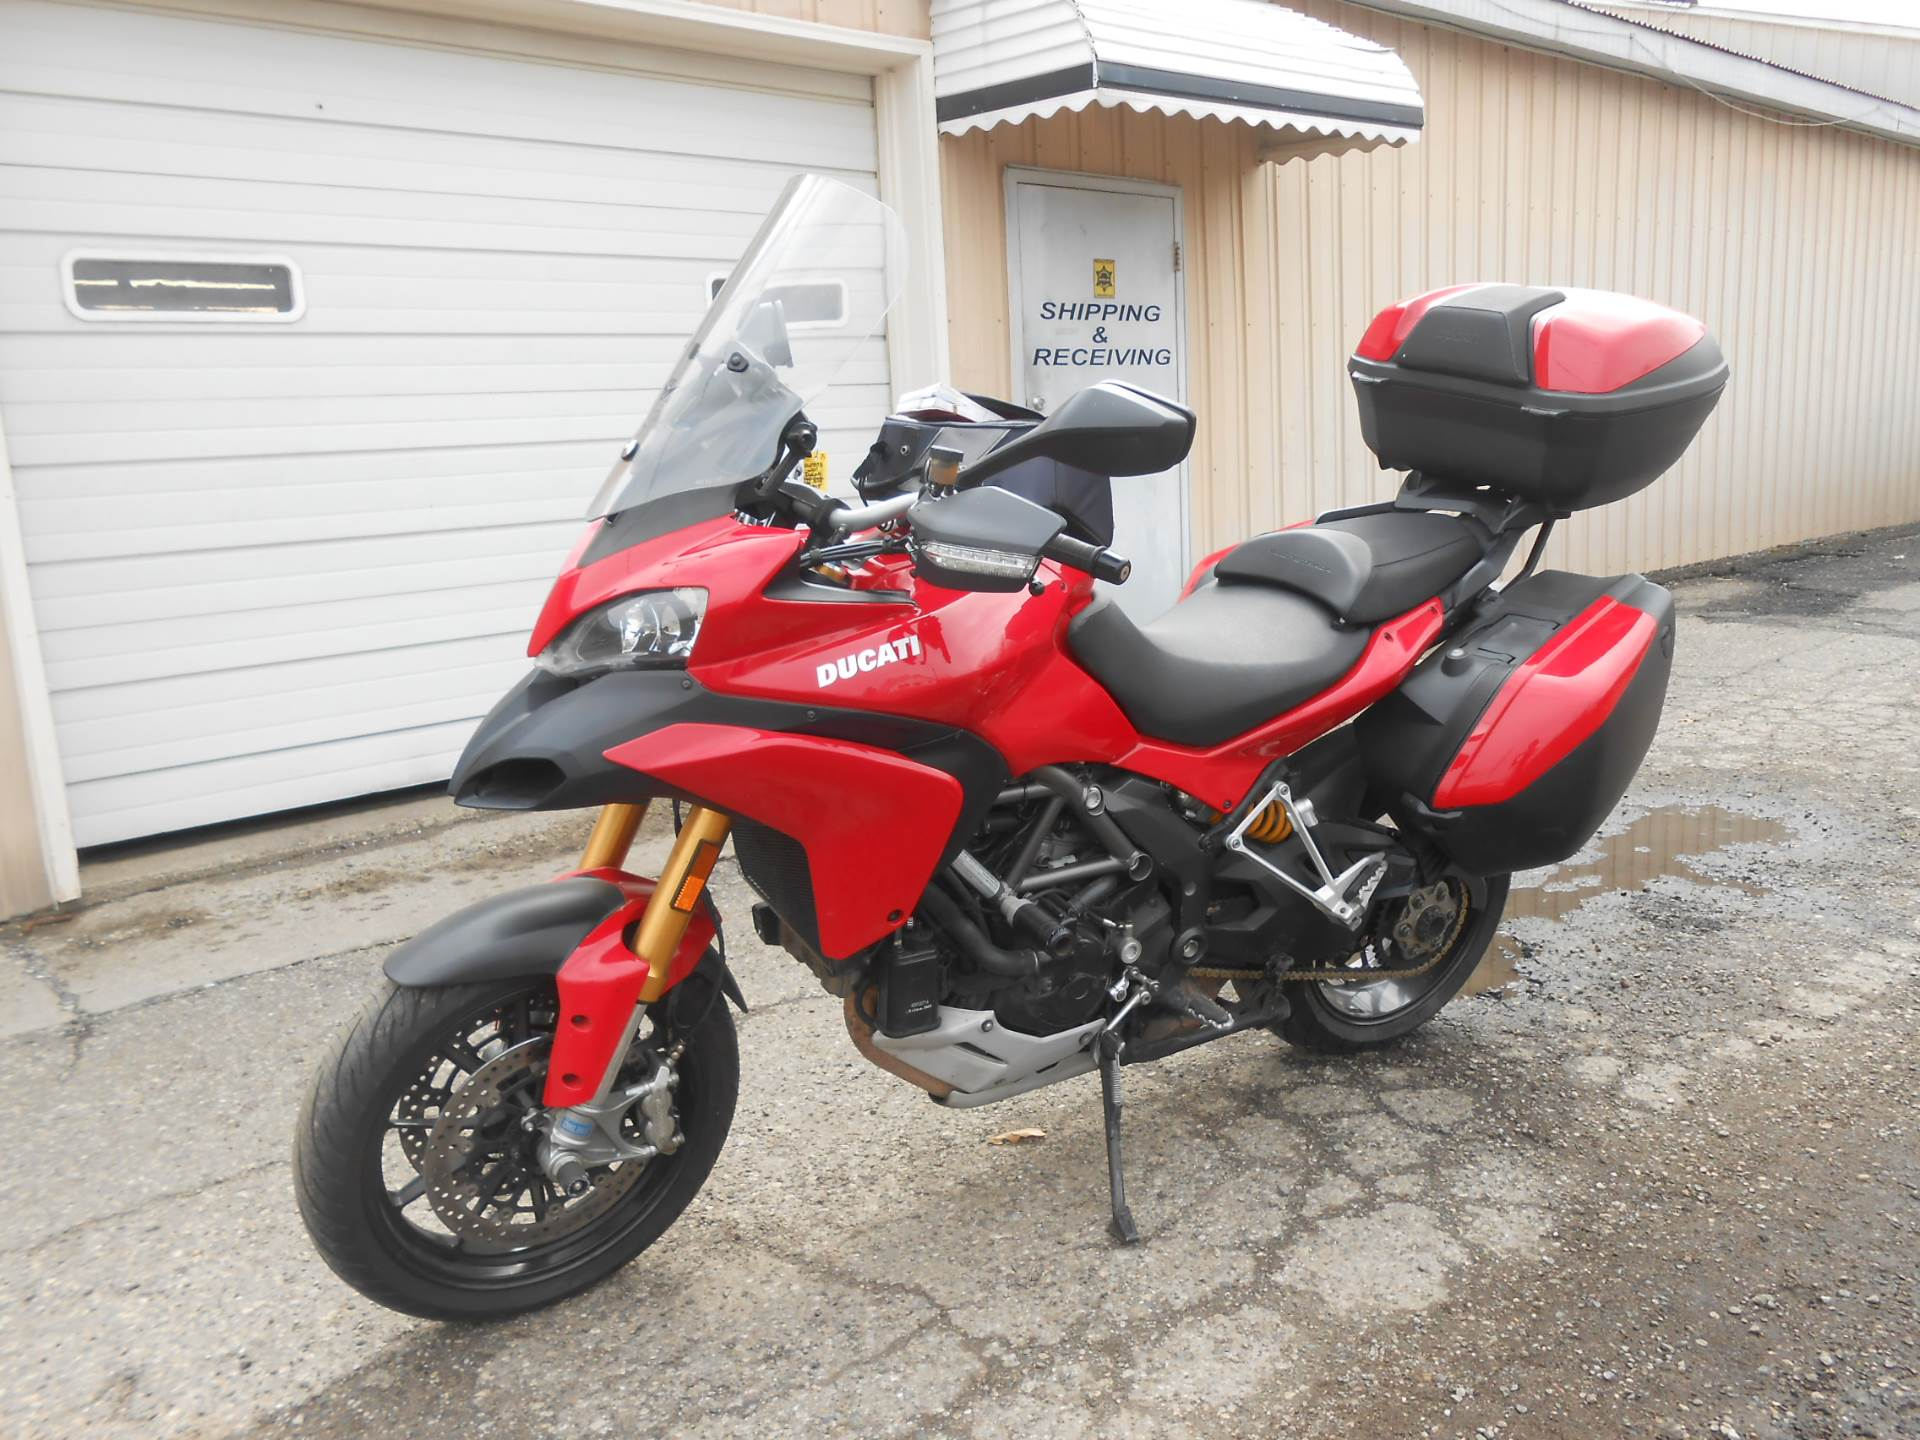 2011 Multistrada 1200 S Touring